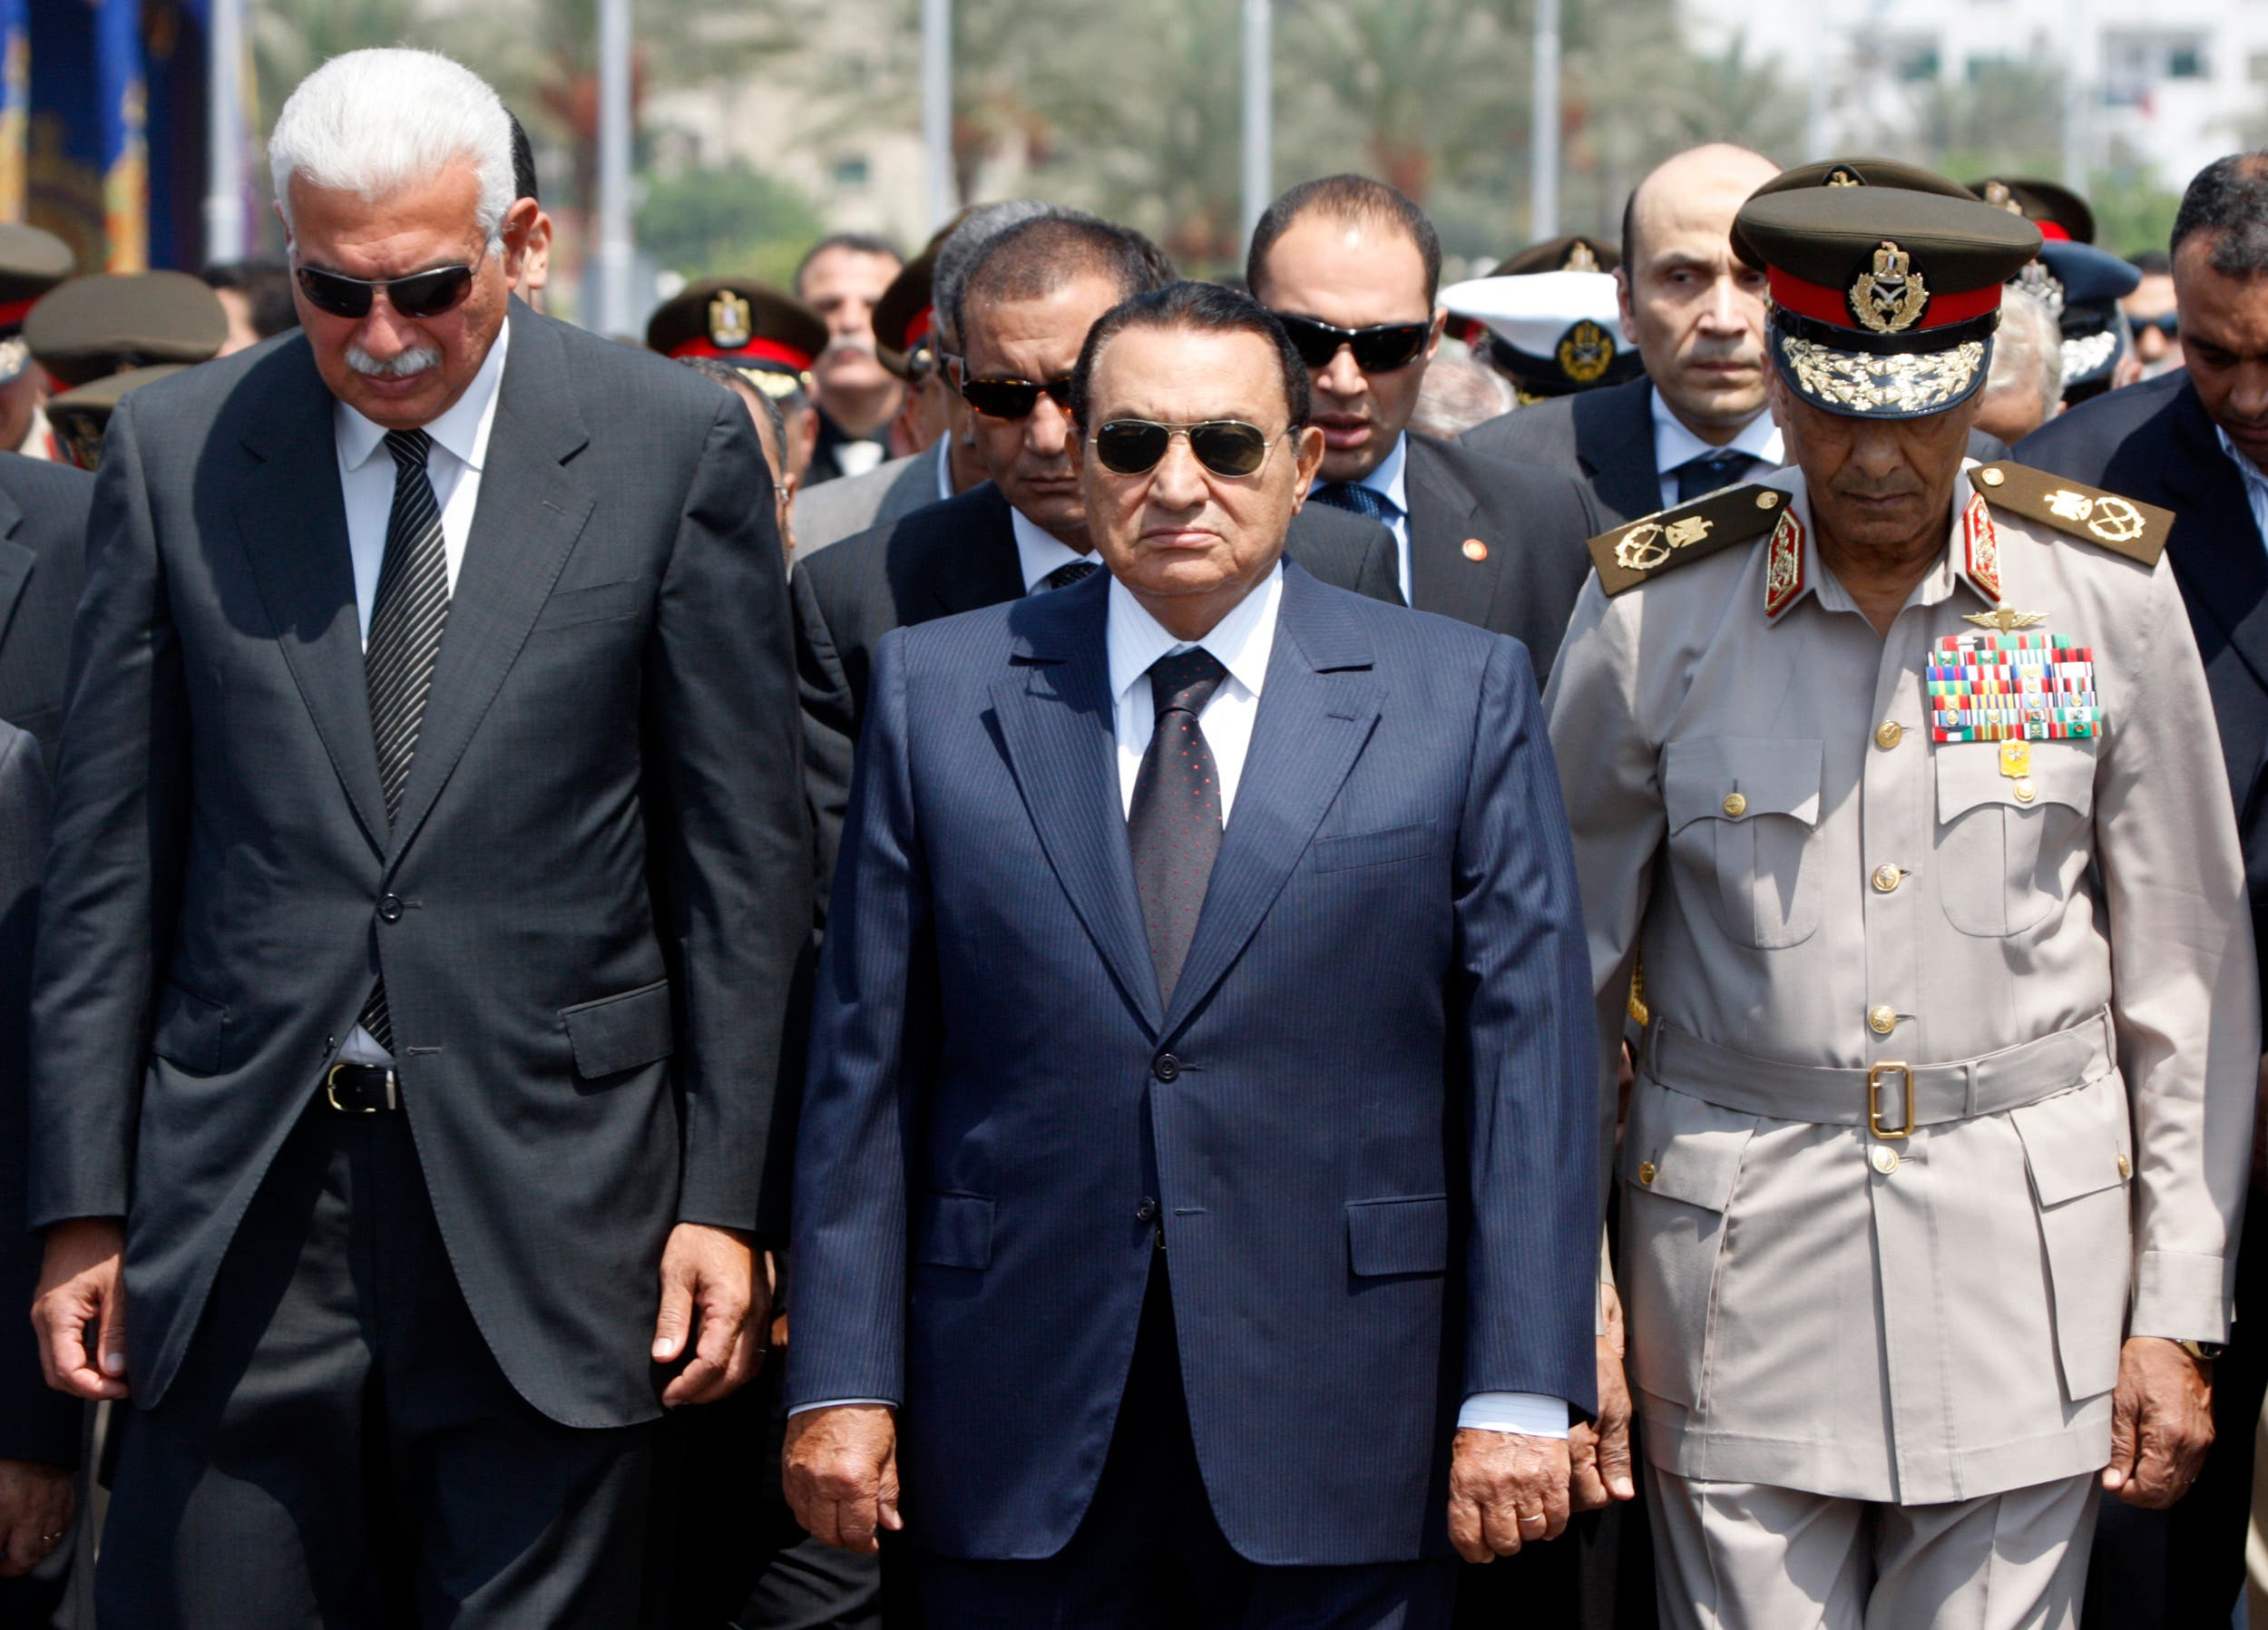 Former Egyptian Defence Minister Field Marshall Mohamed Hussein Tantawi (R) is seen with former President Hosni Mubarak (C) and Egyptian Prime Minister Ahmed Nazif in 2008. reu